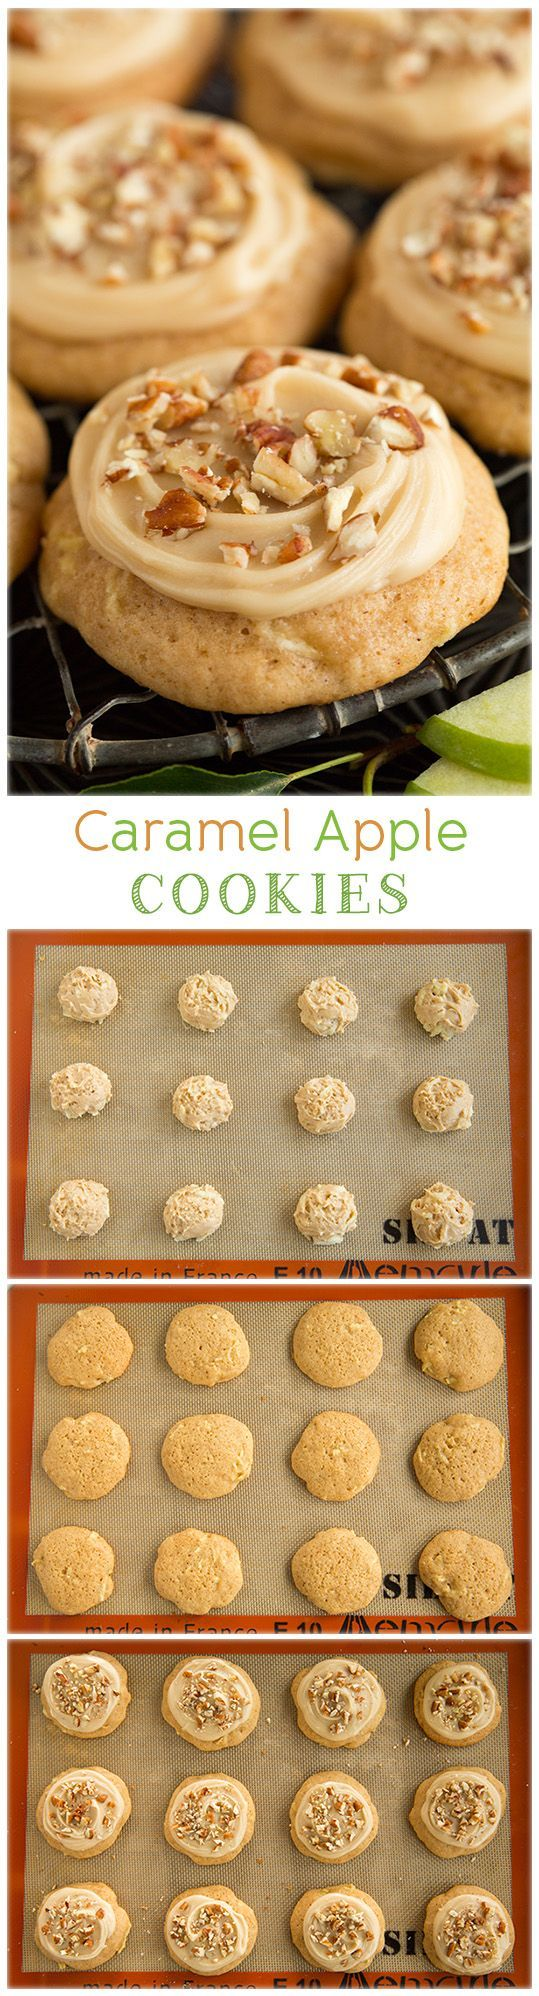 Caramel Apple Cookies - these cookies taste just like caramel apples but in soft cookie form! The perfect fall cookie! They're so good!